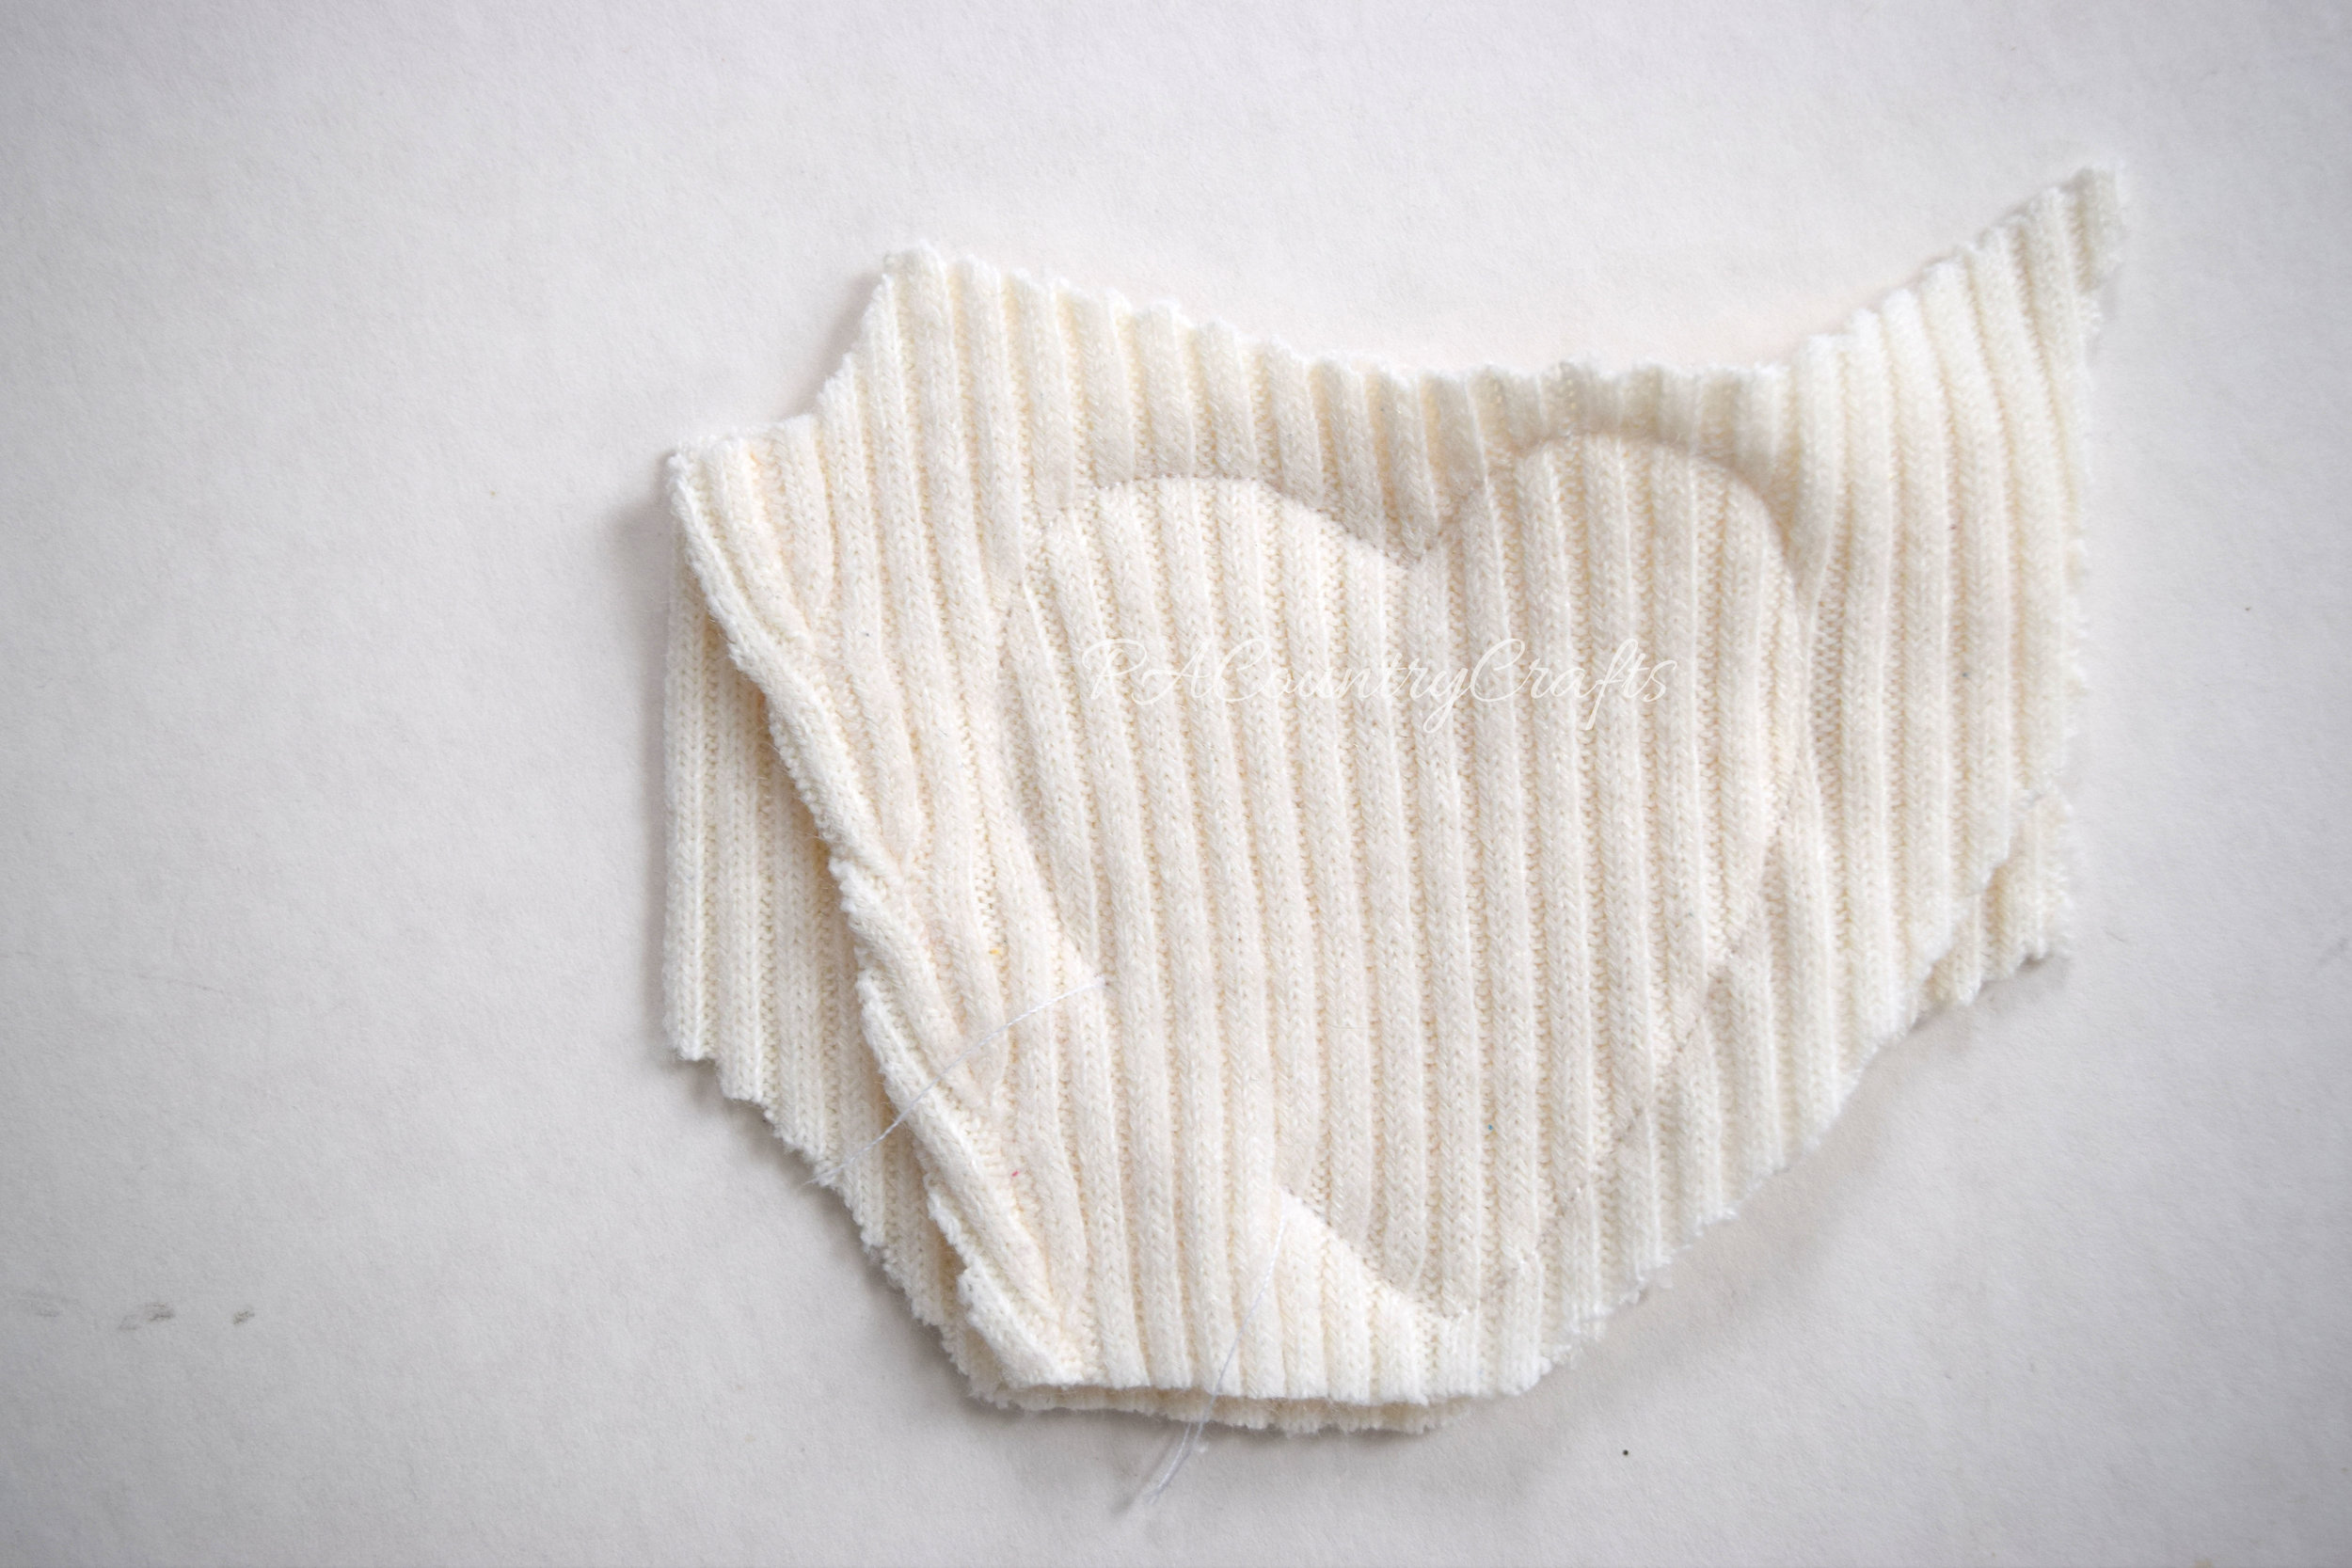 Sew hand warmers from old sweaters